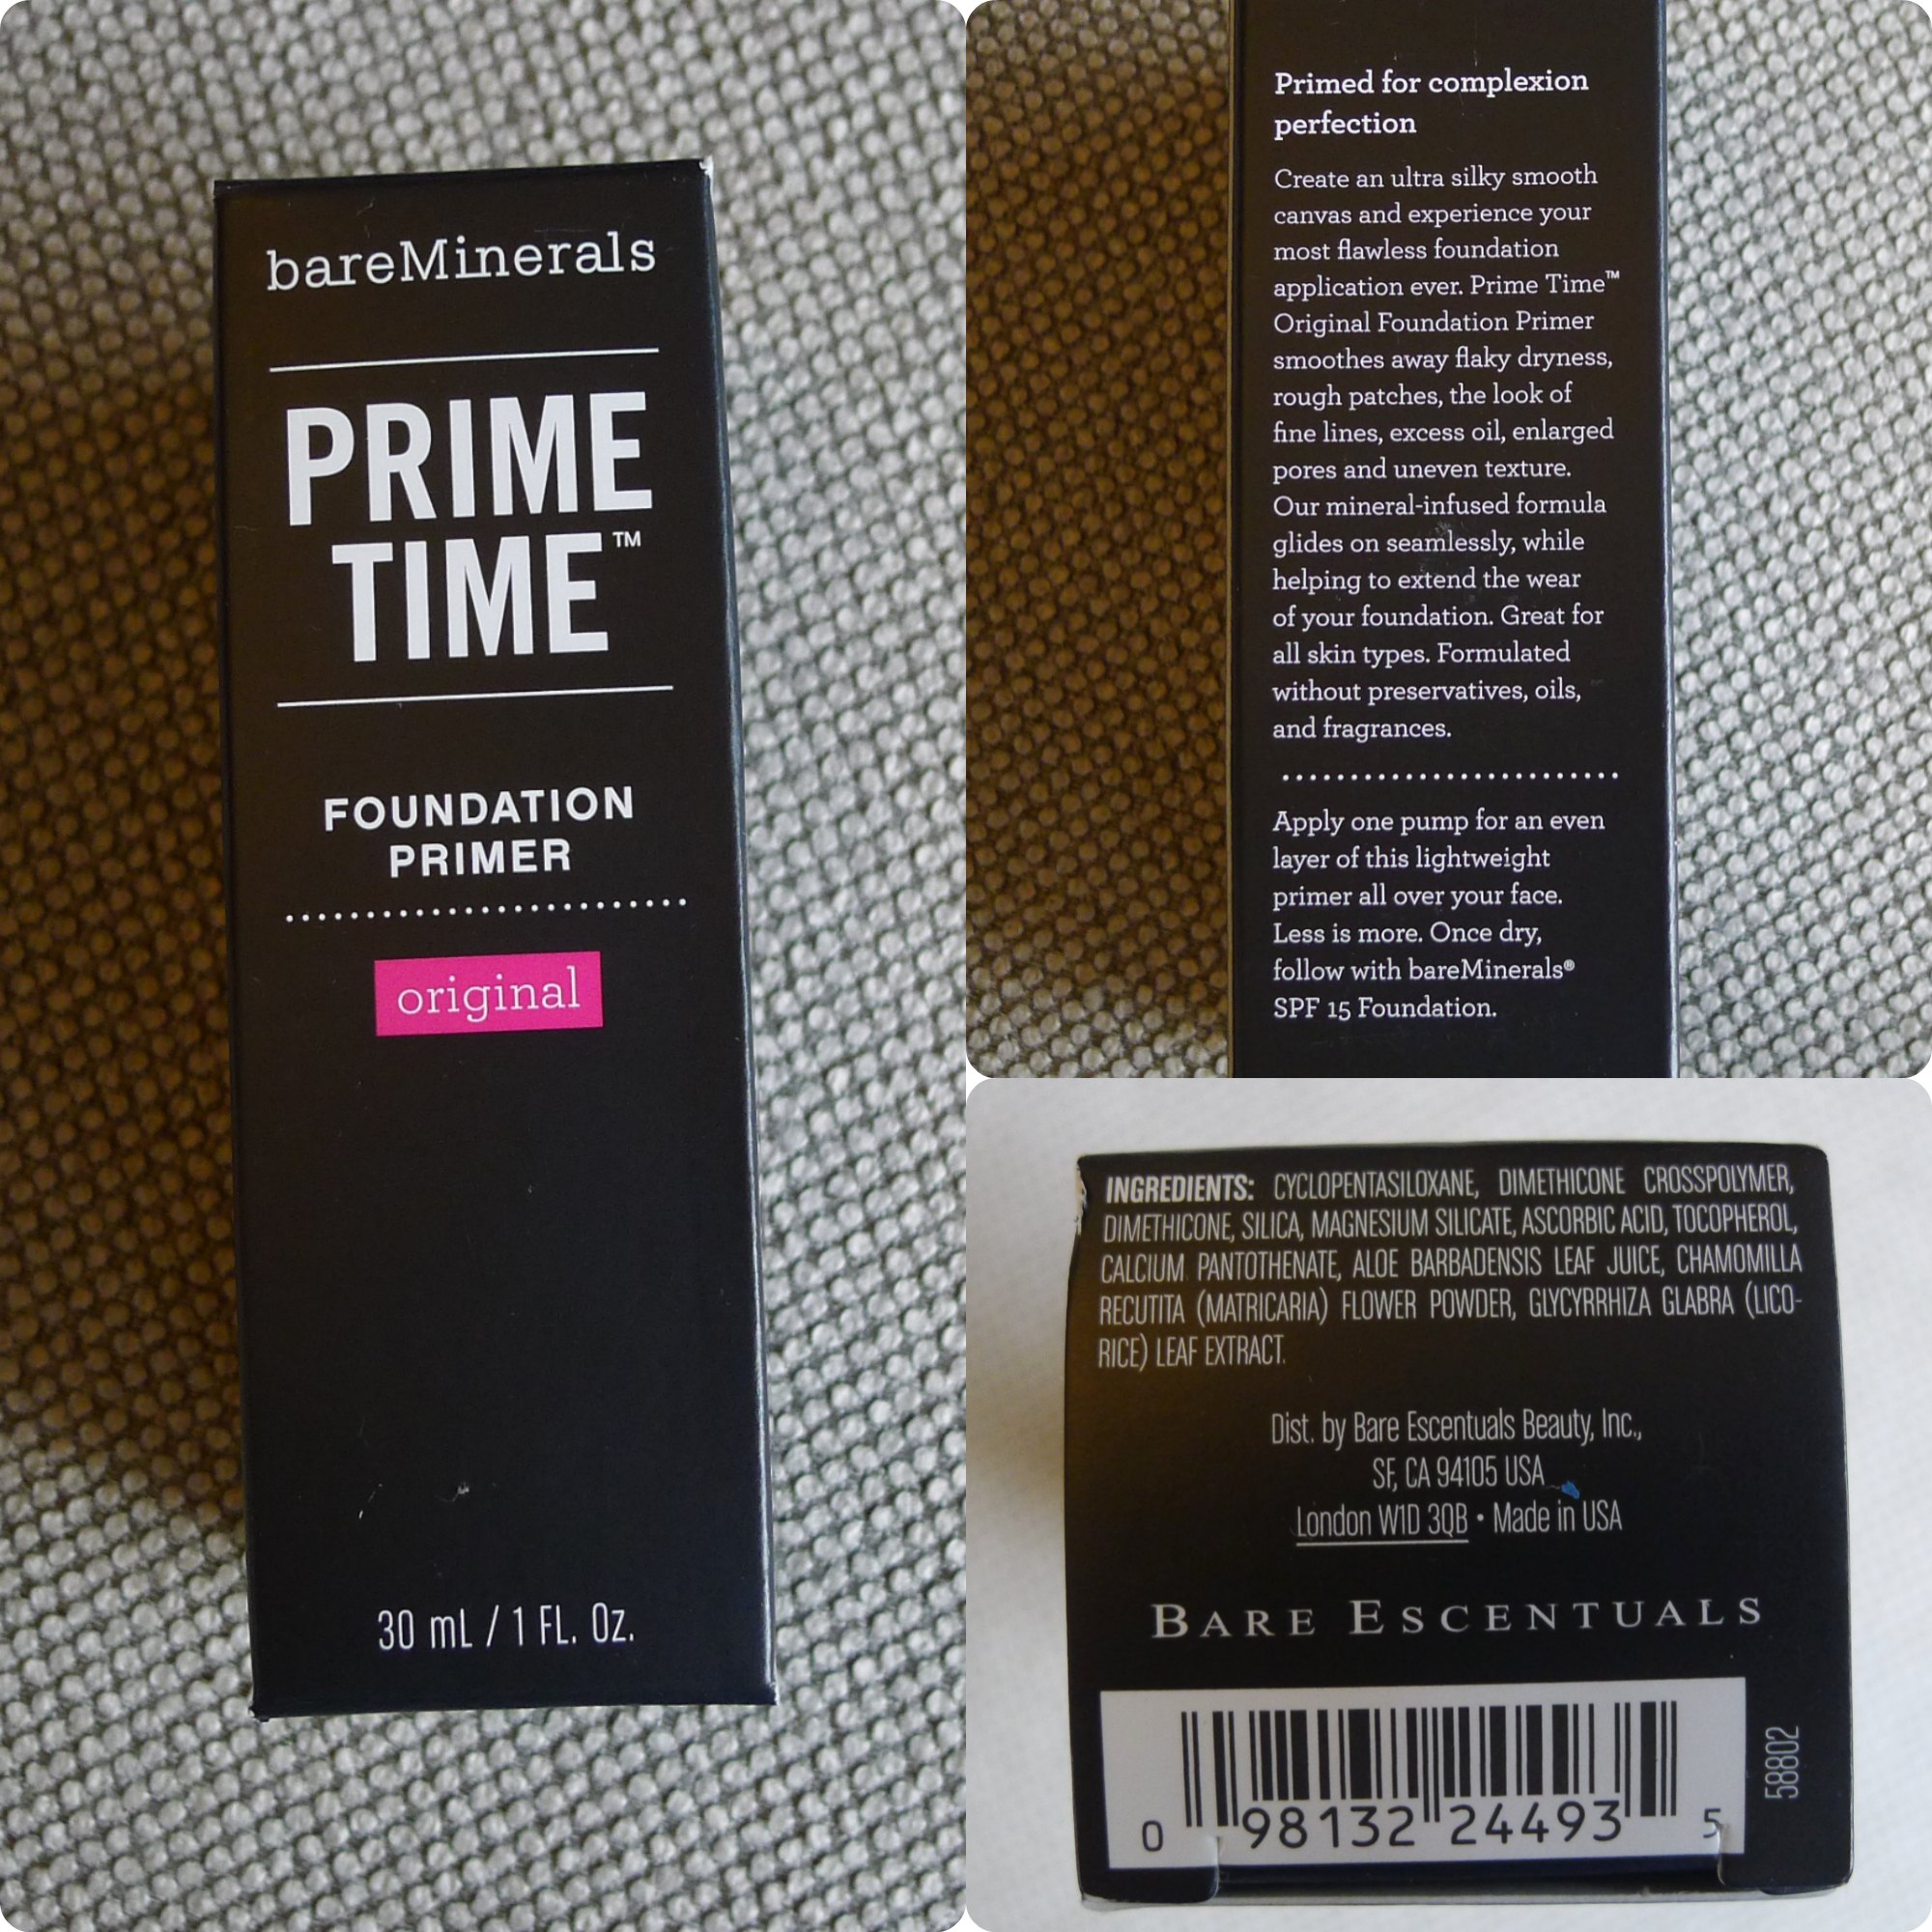 bareminerals primer recension